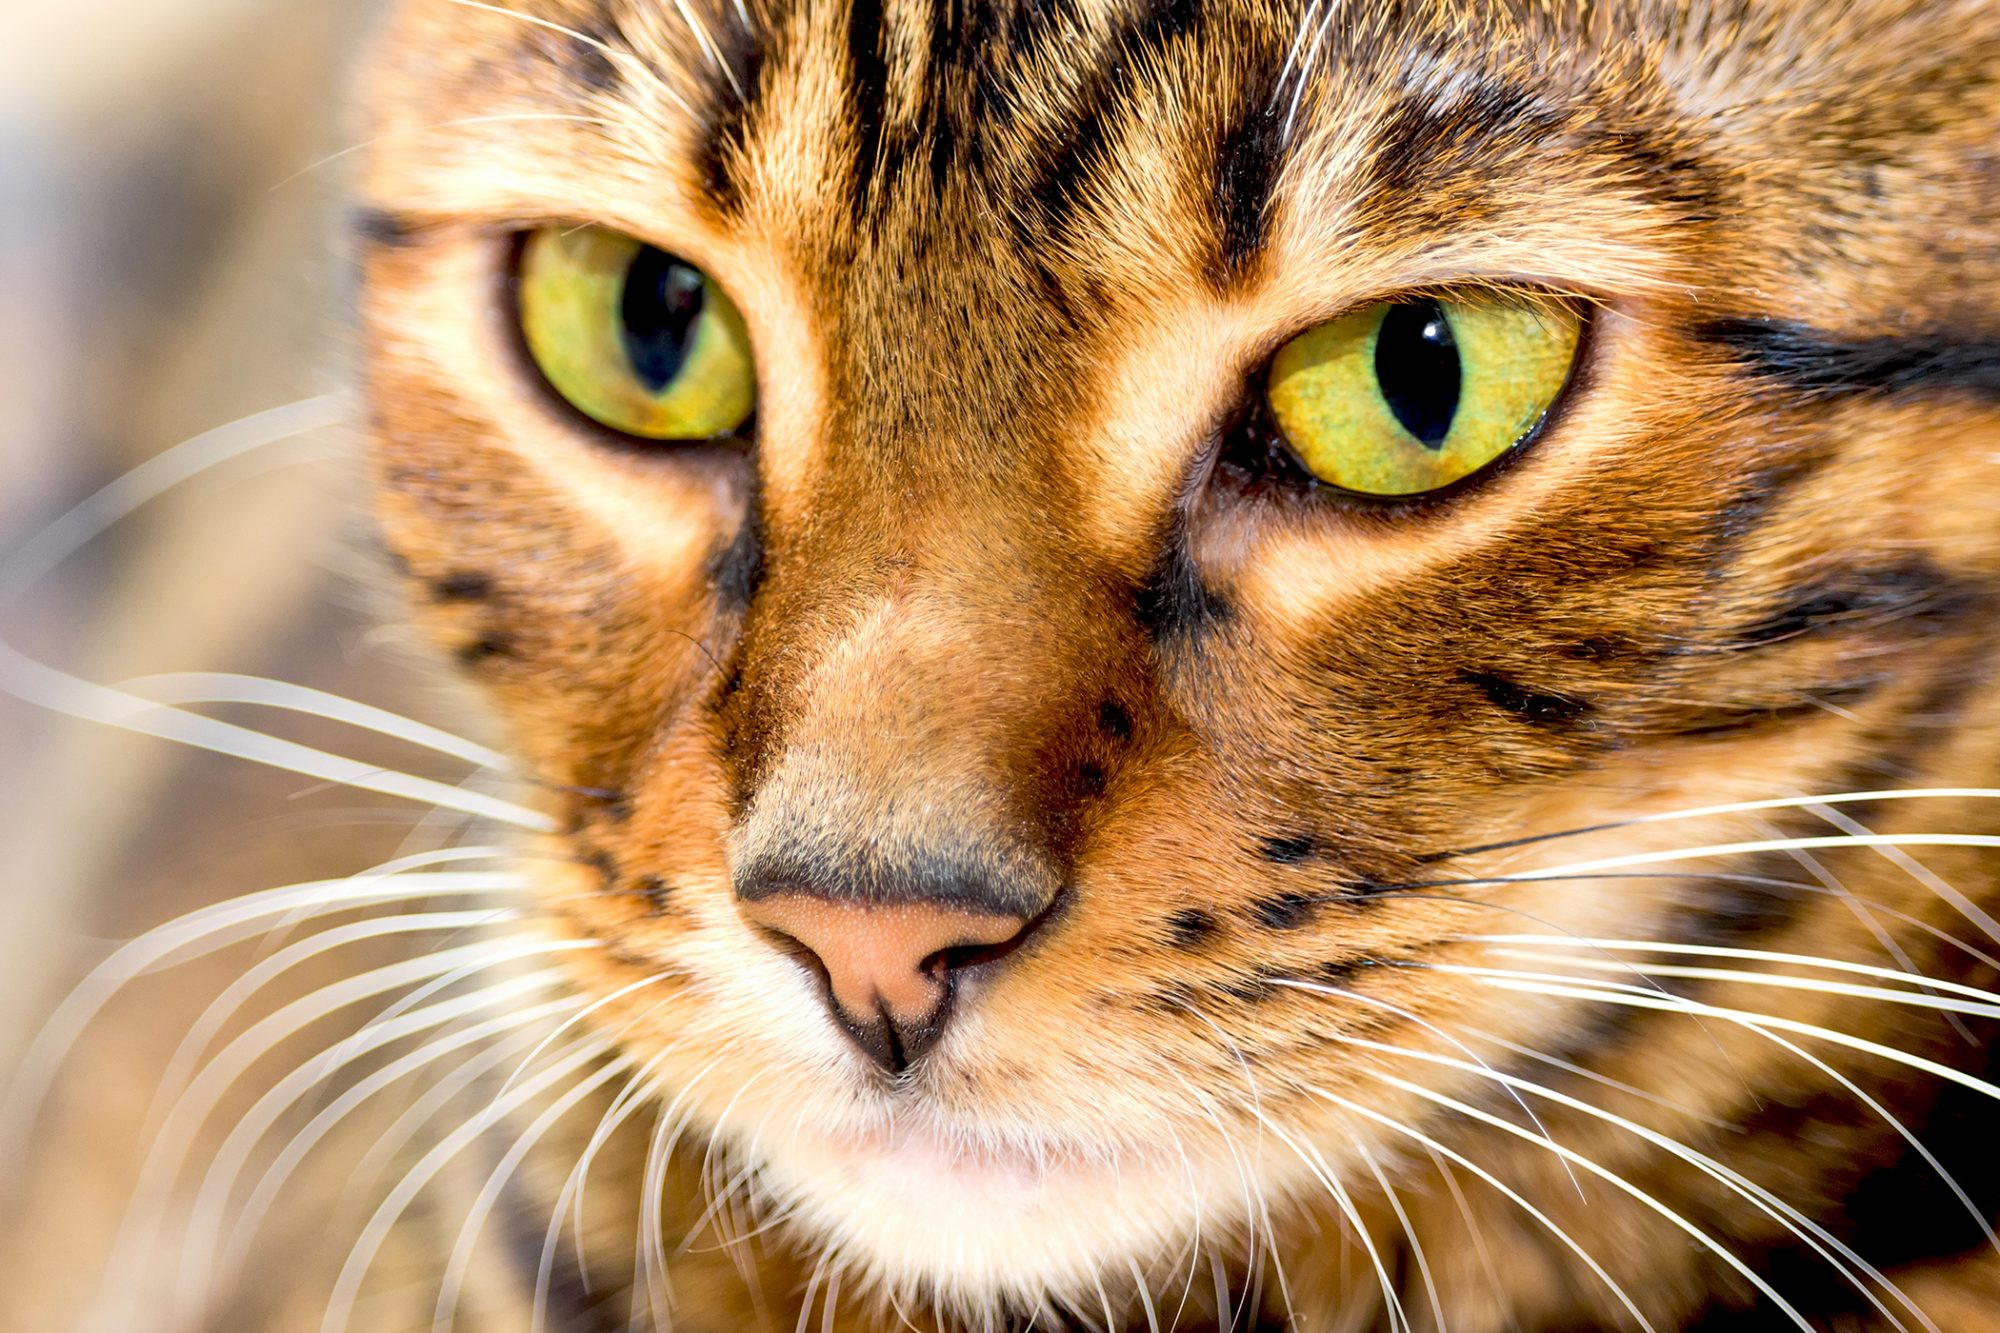 Toyer cat headshot close up